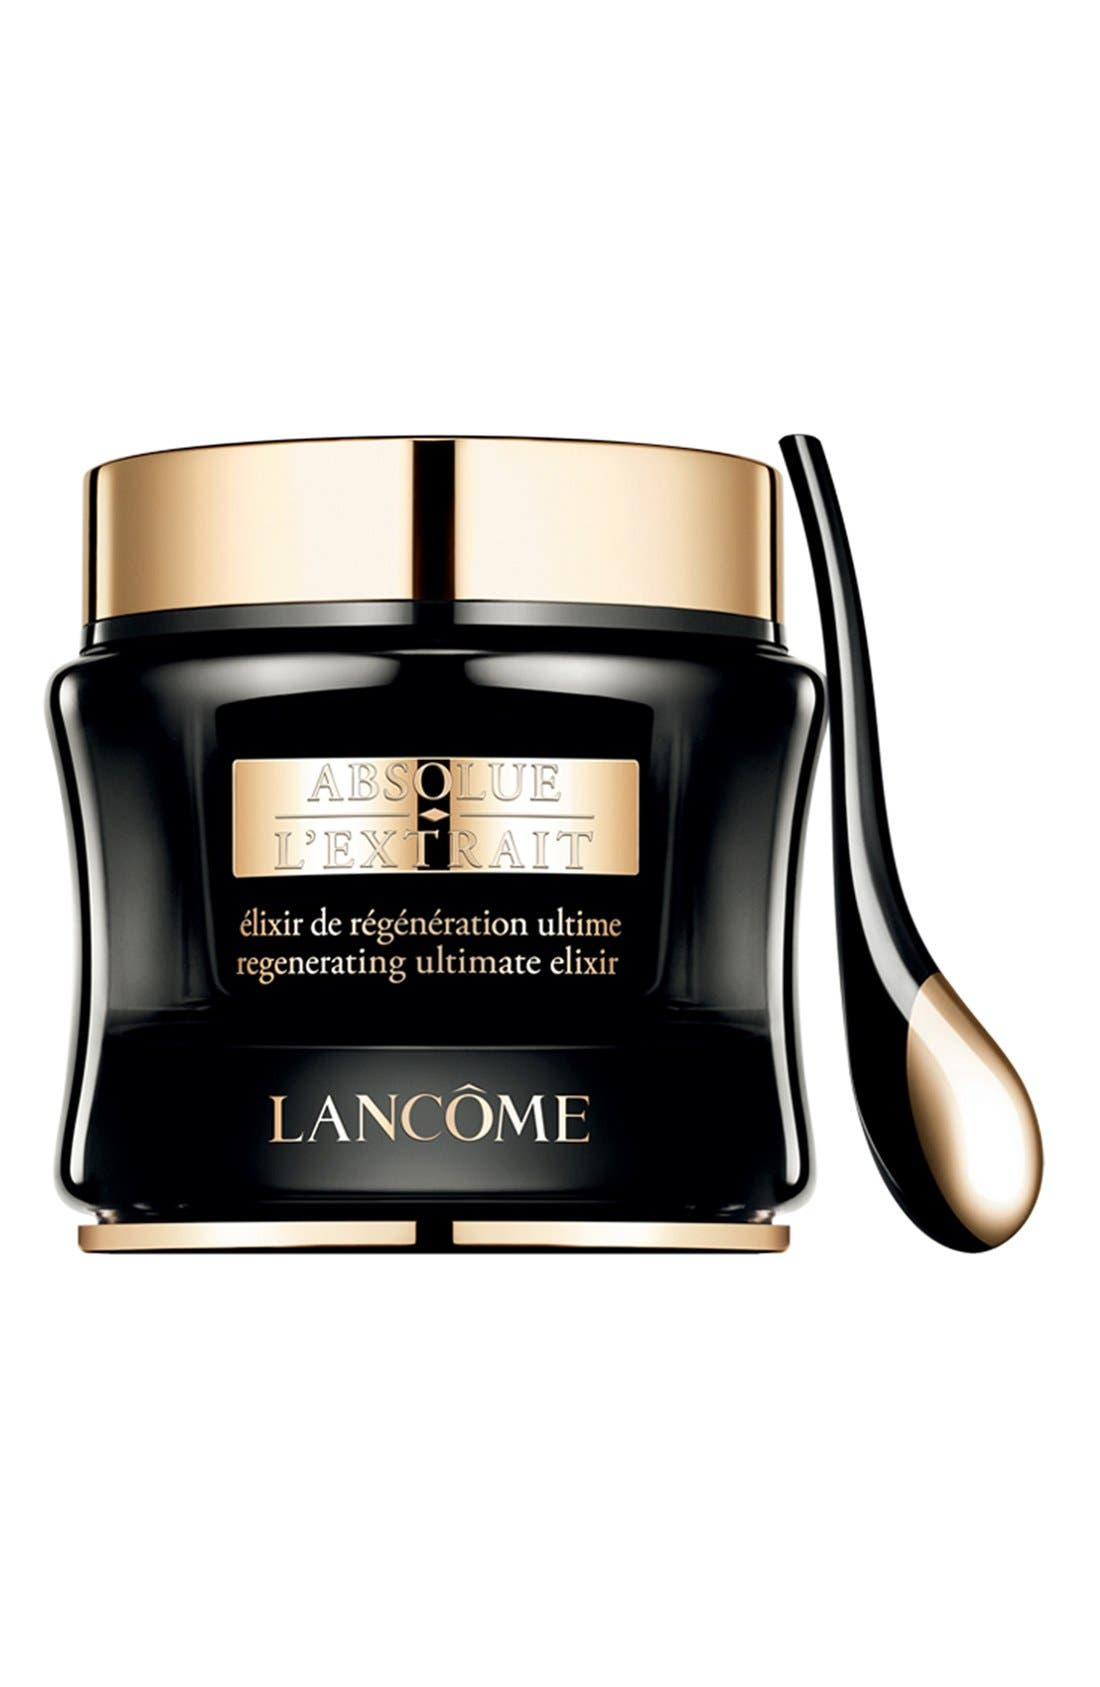 Lancôme Absolue LExtrait Regenerating Ultimate Elixir